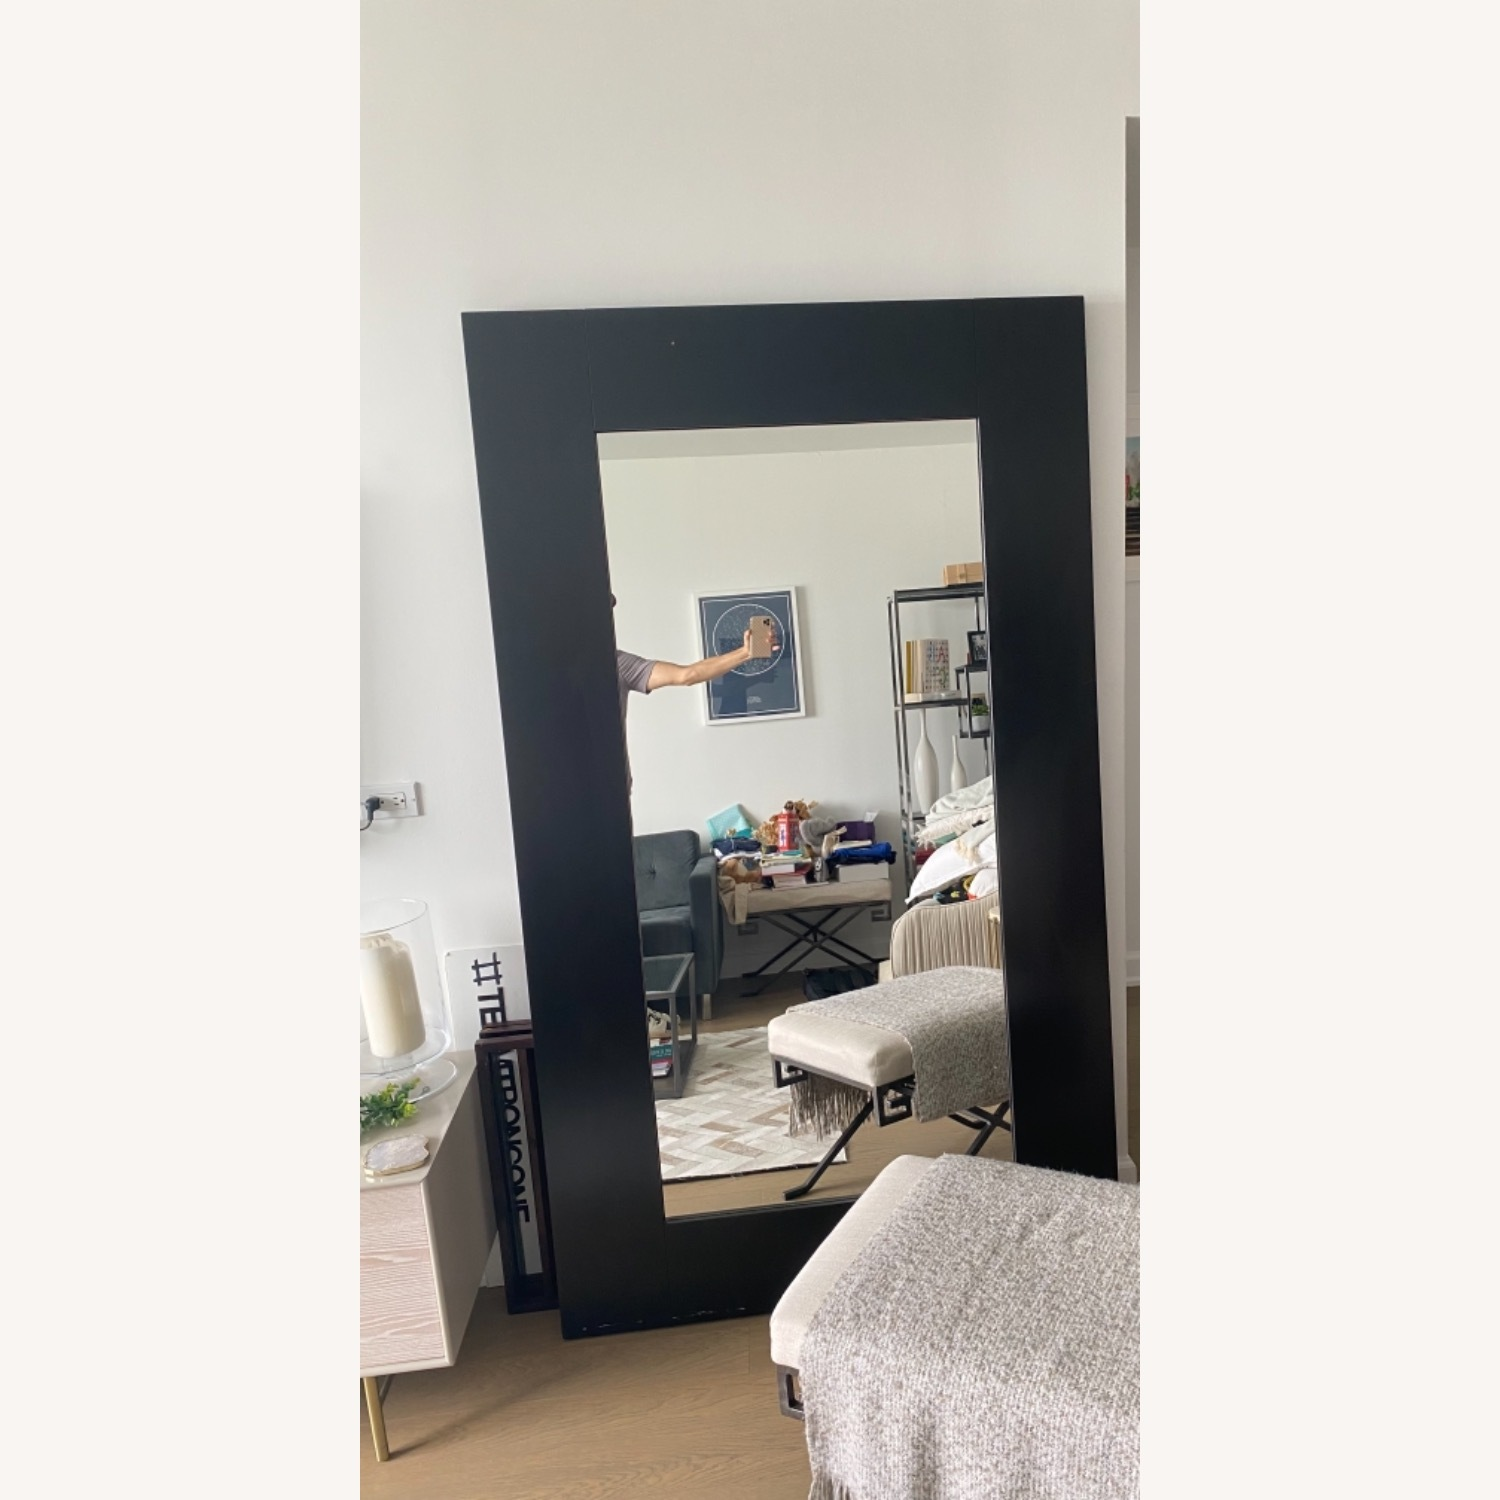 6ft. Wall Mirror - image-1